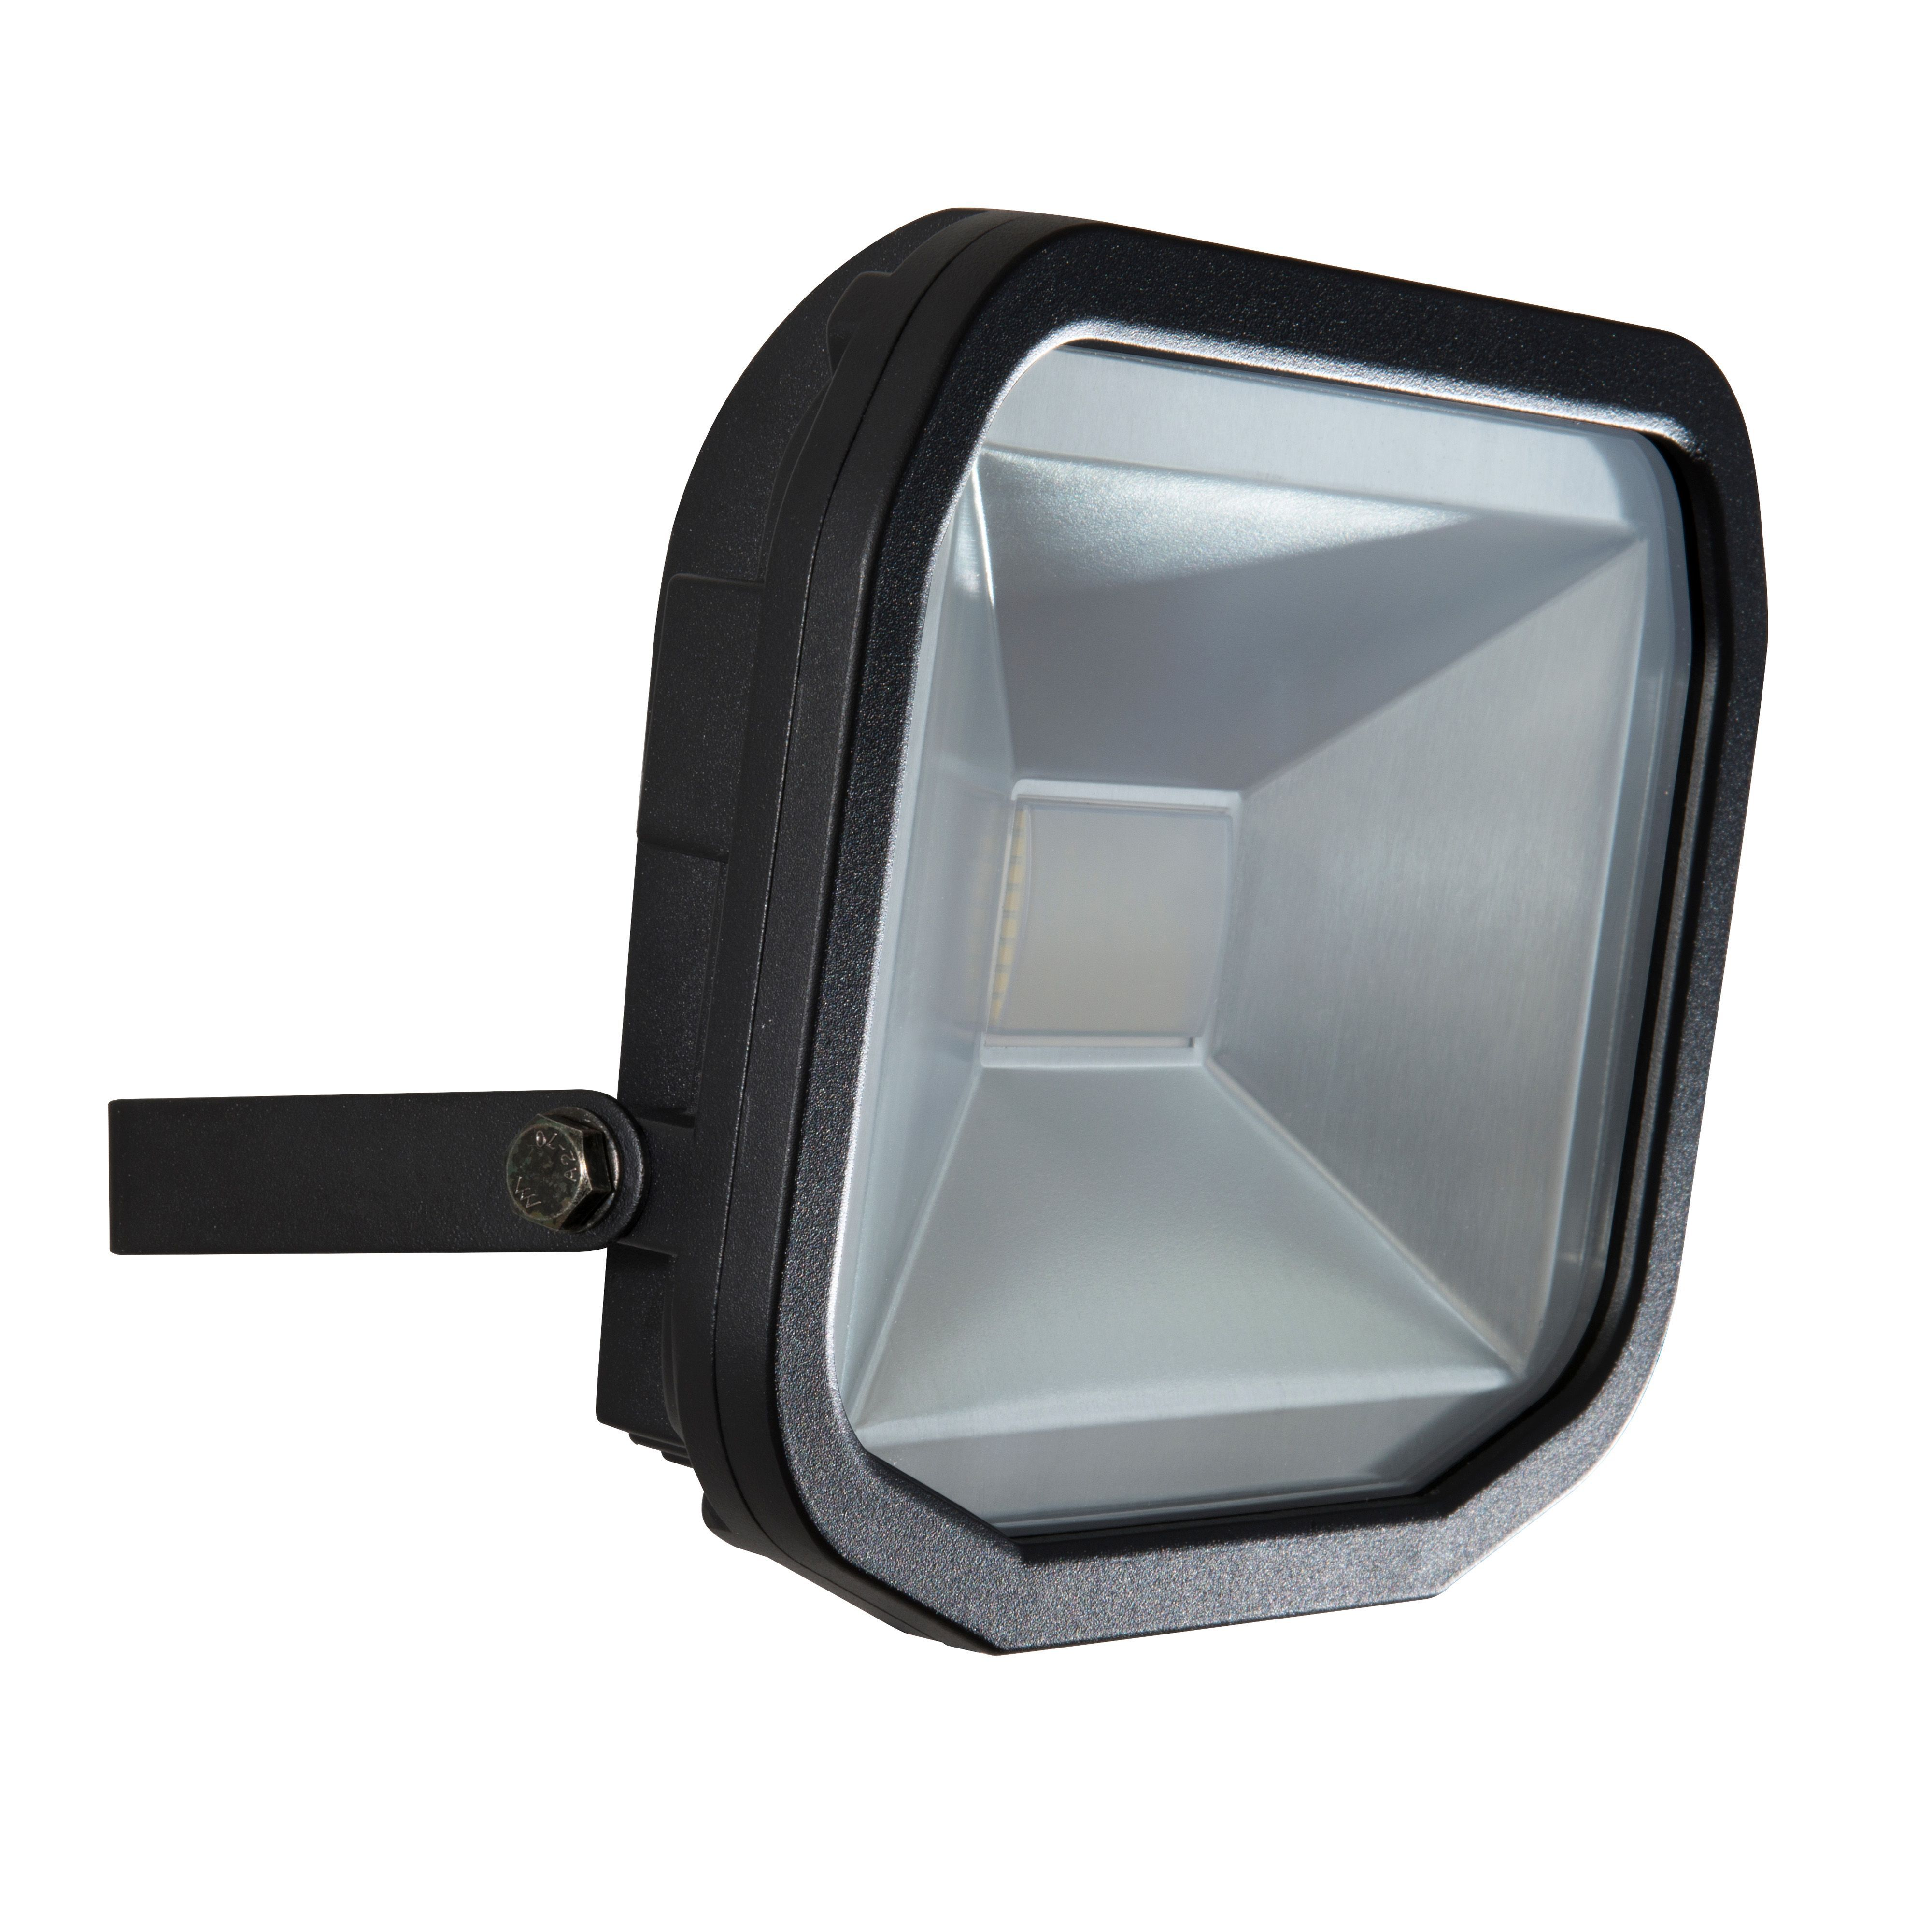 Luceco black 38w mains powered external security flood light luceco black 38w mains powered external security flood light departments diy at bq aloadofball Choice Image